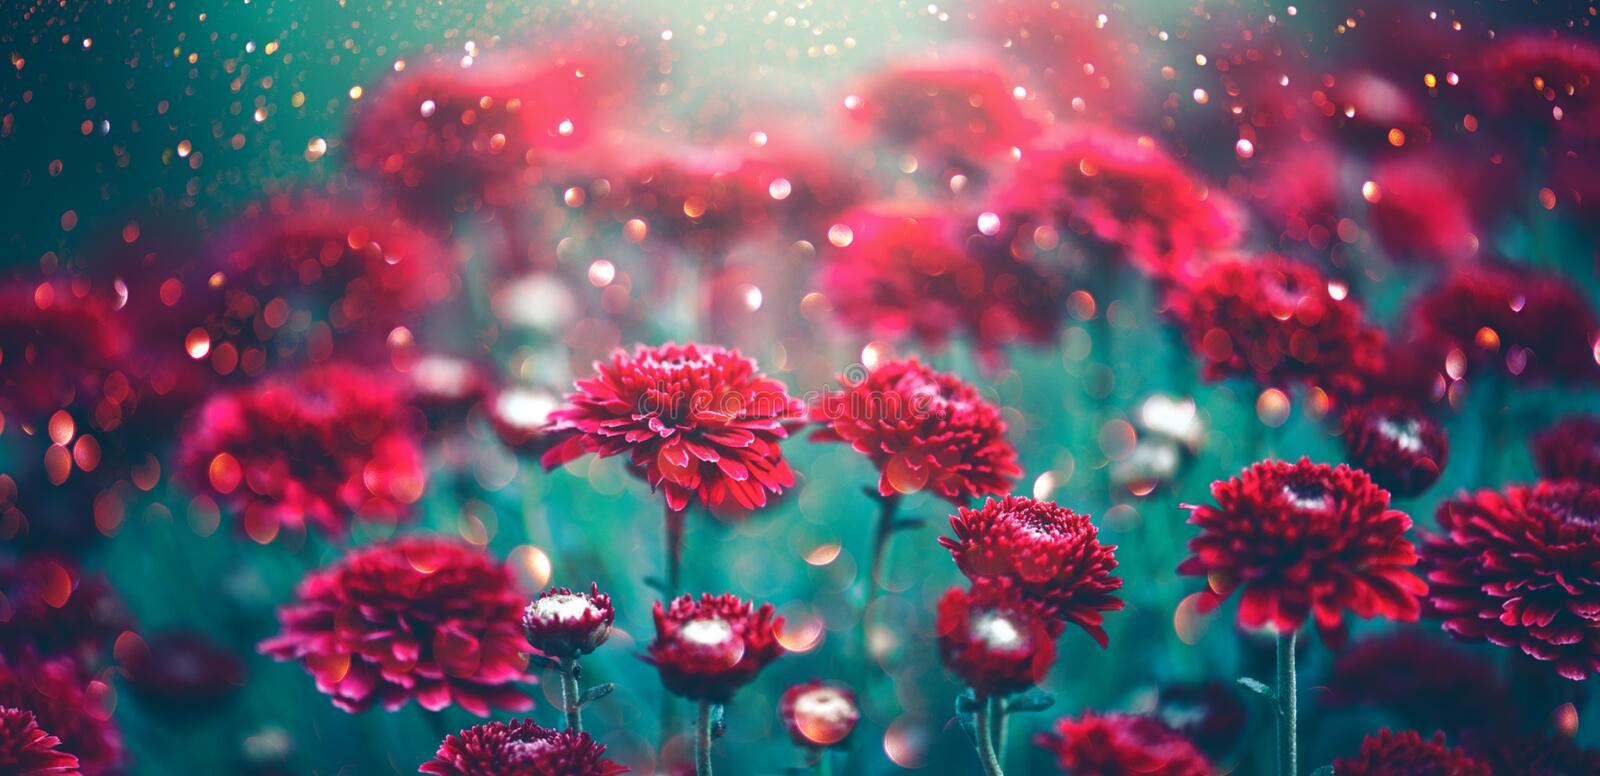 Chrysanthemum red flowers blooming in a garden. Autumn flowers art design royalty free stock photography